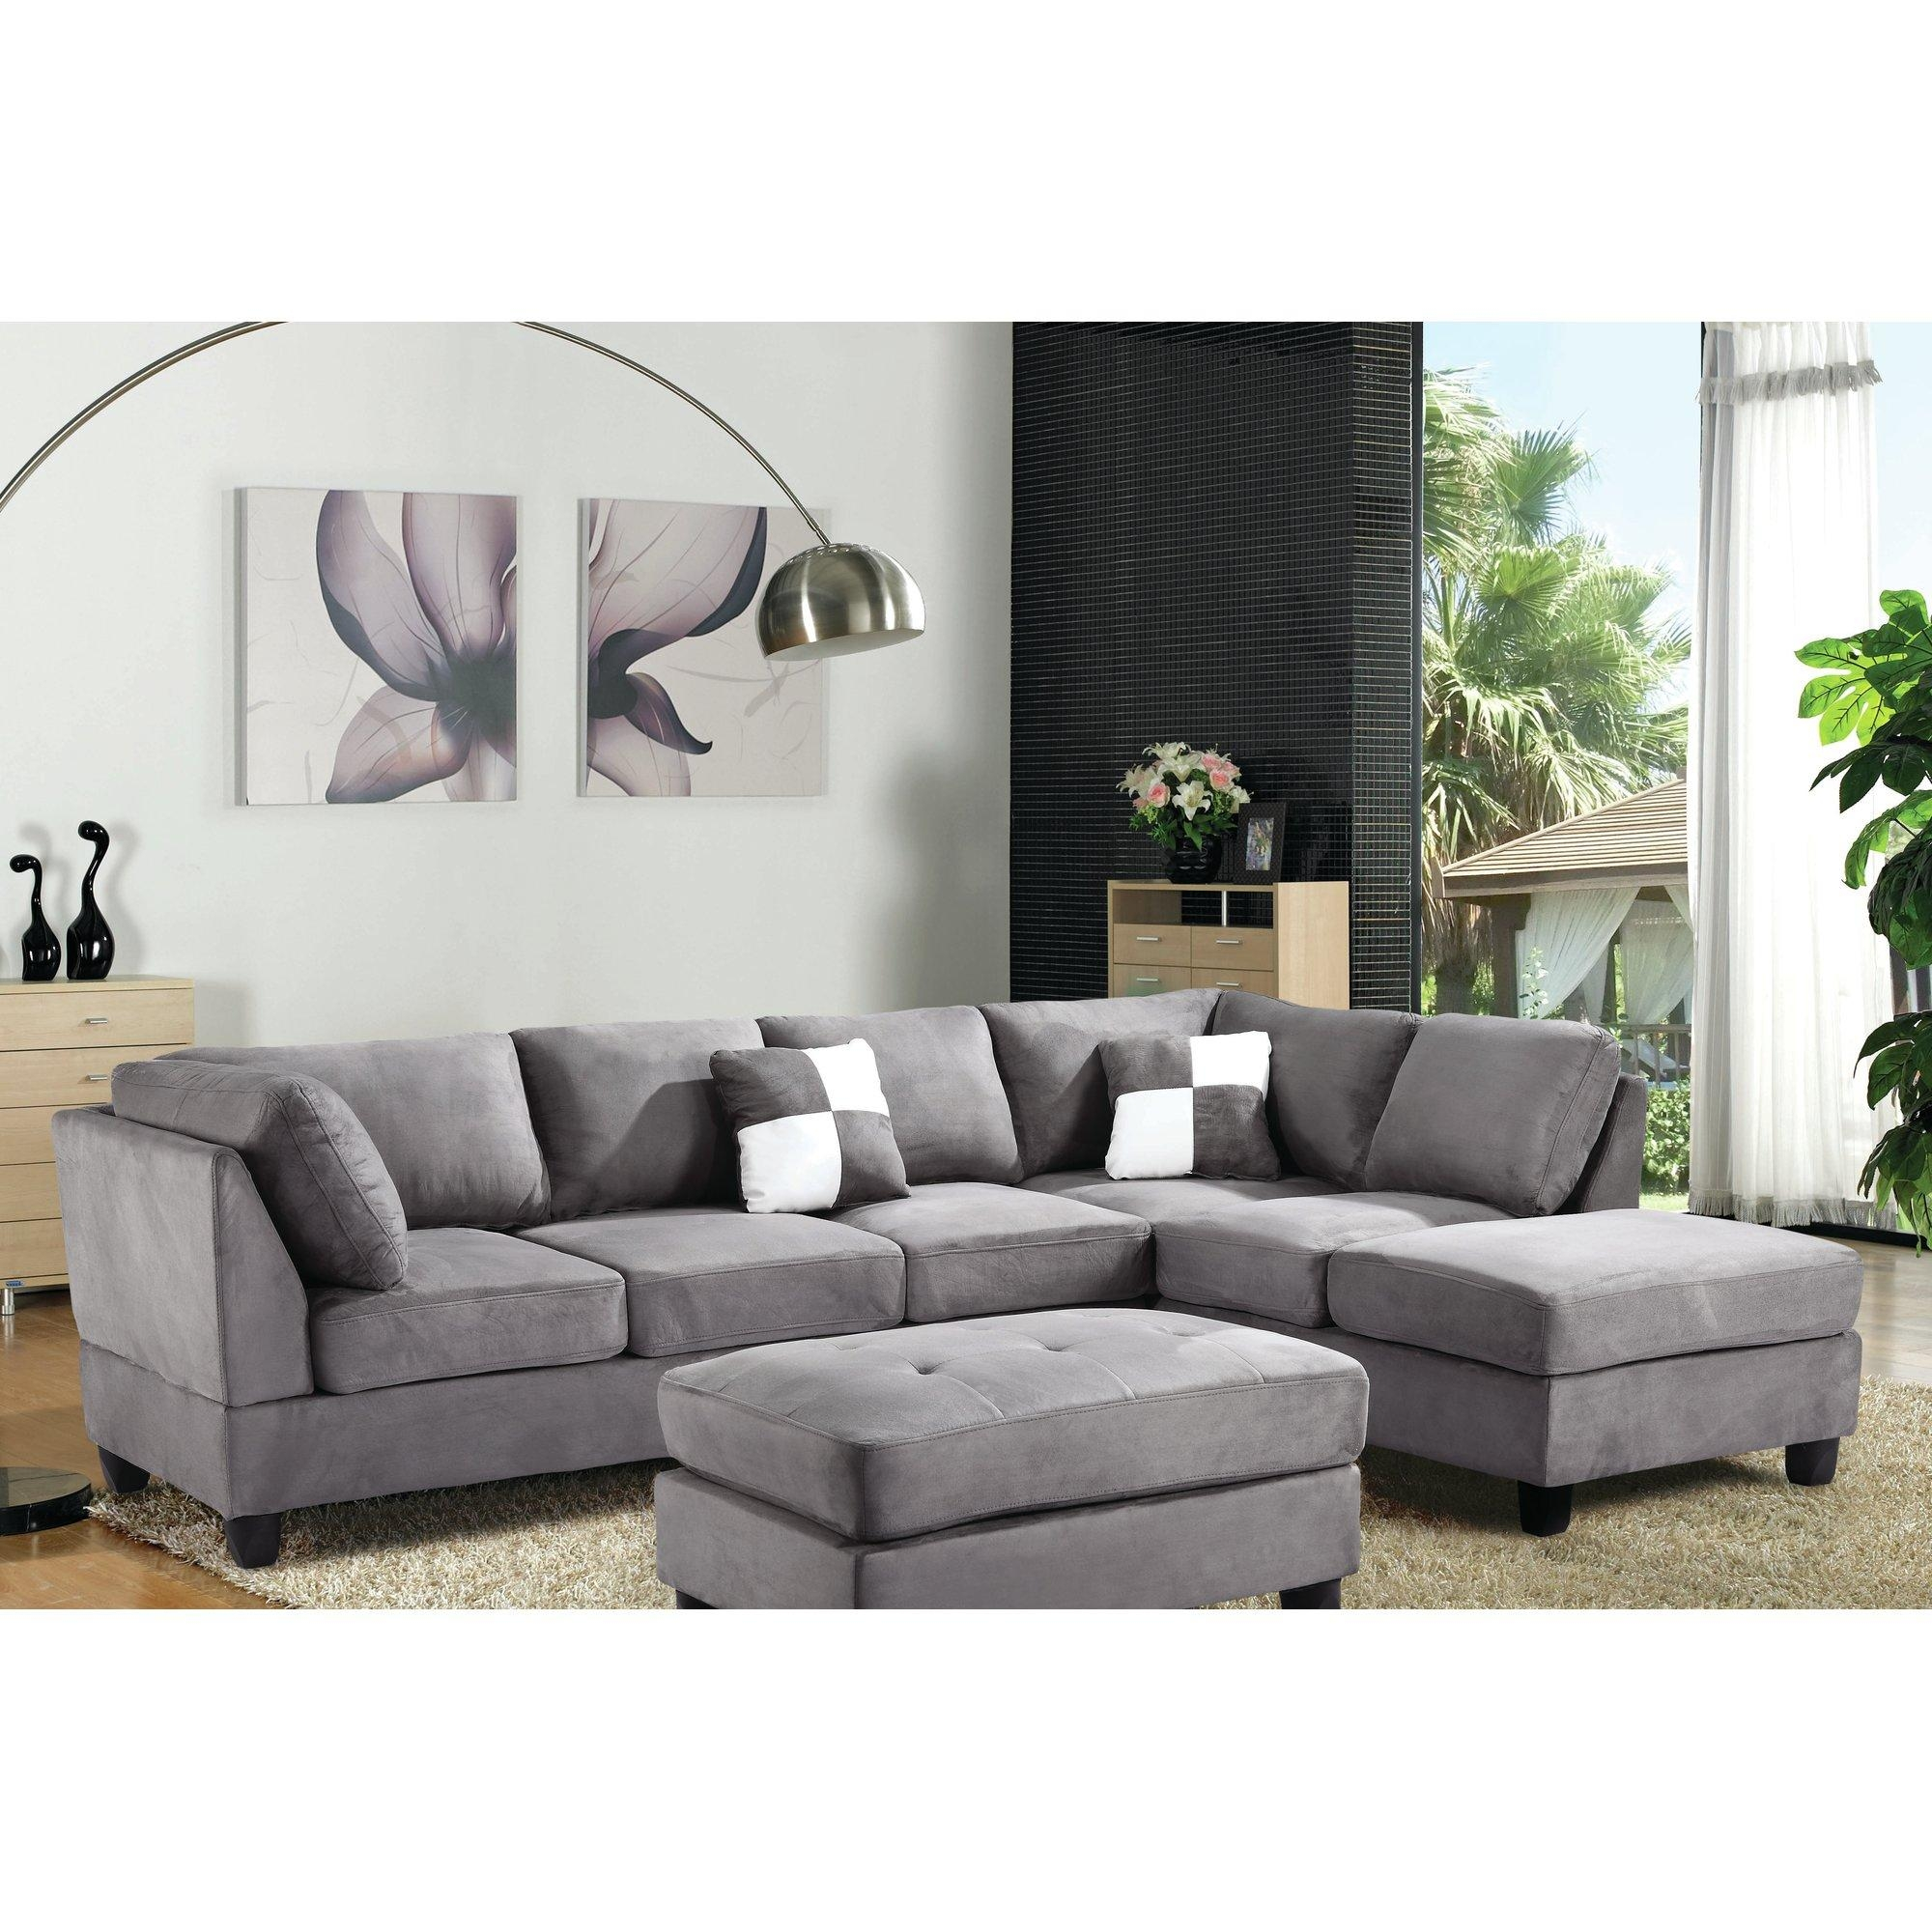 Furniture: Reversible Sectional Sofa Chaise | Sofa With Ottoman Regarding Sofa With Chaise And Ottoman (Image 8 of 20)